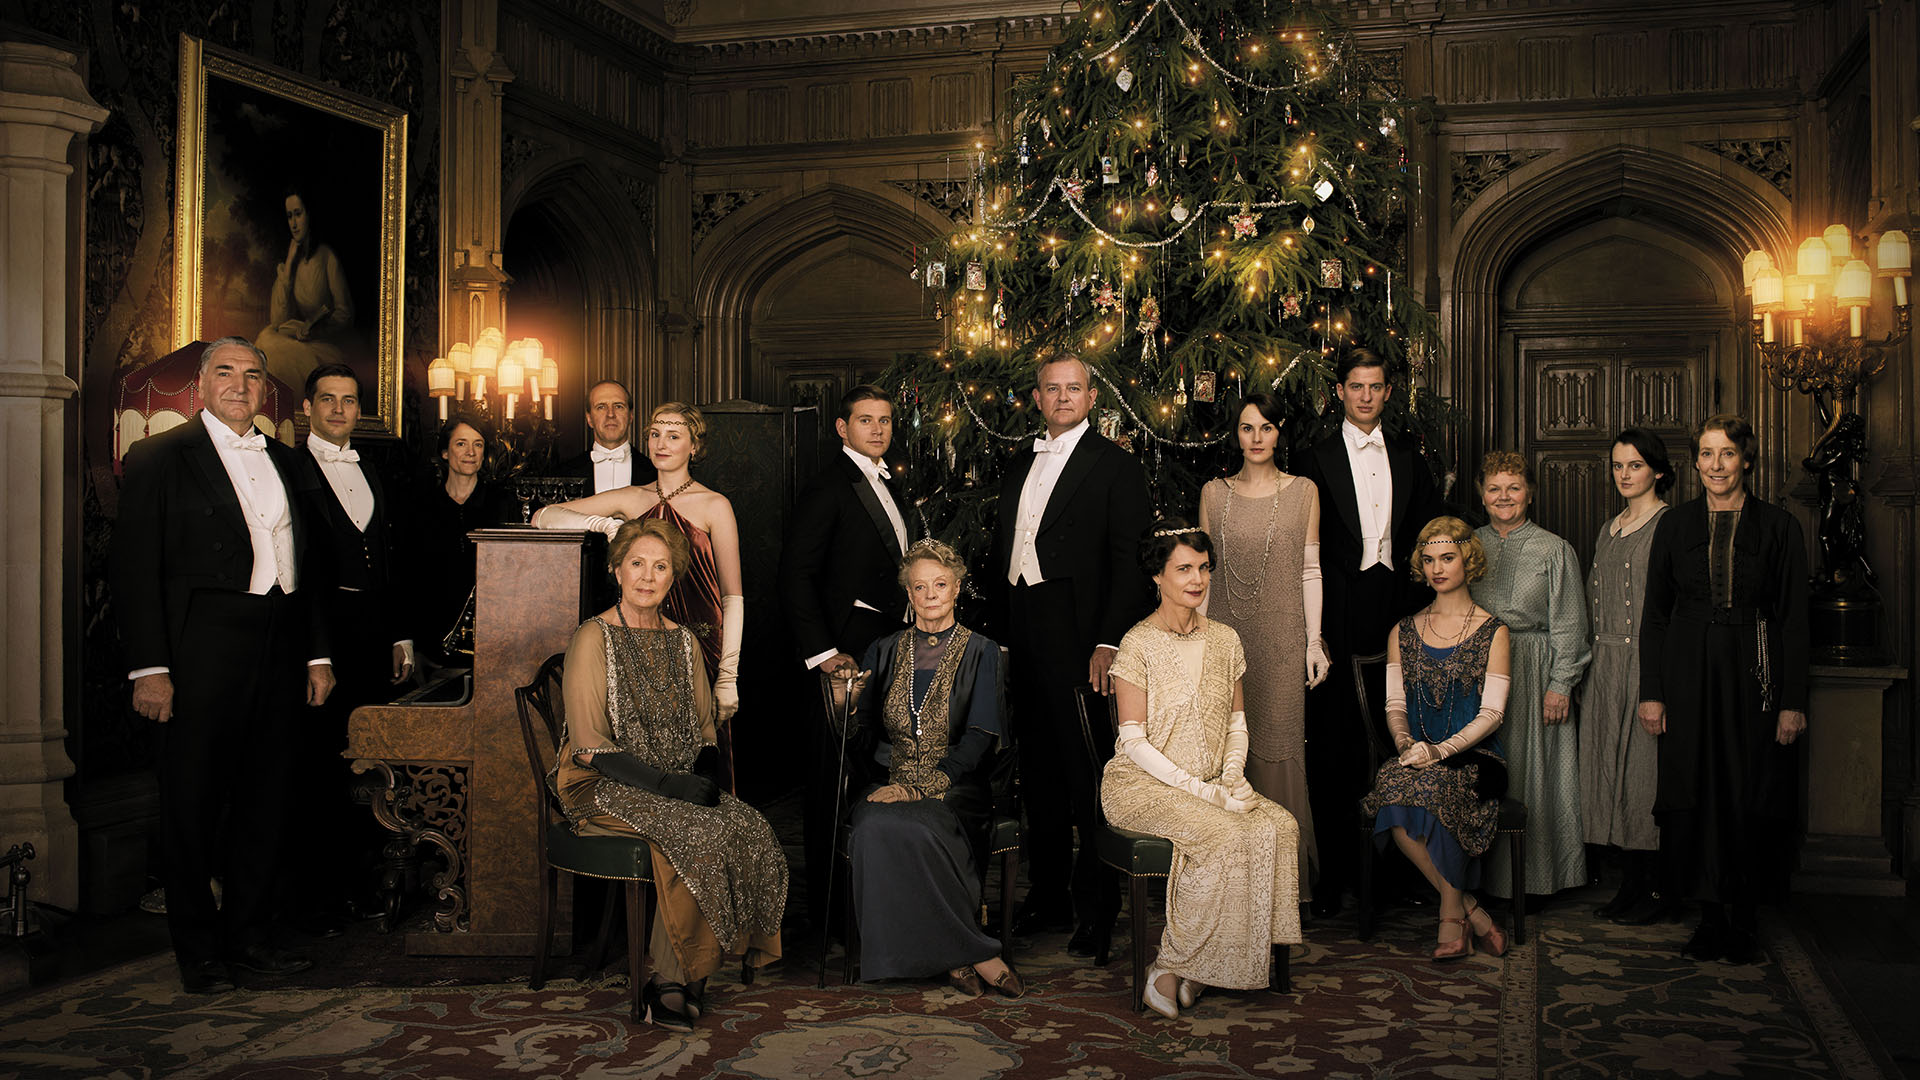 Image result for Downton Abbey: Christmas at Downton Abbey